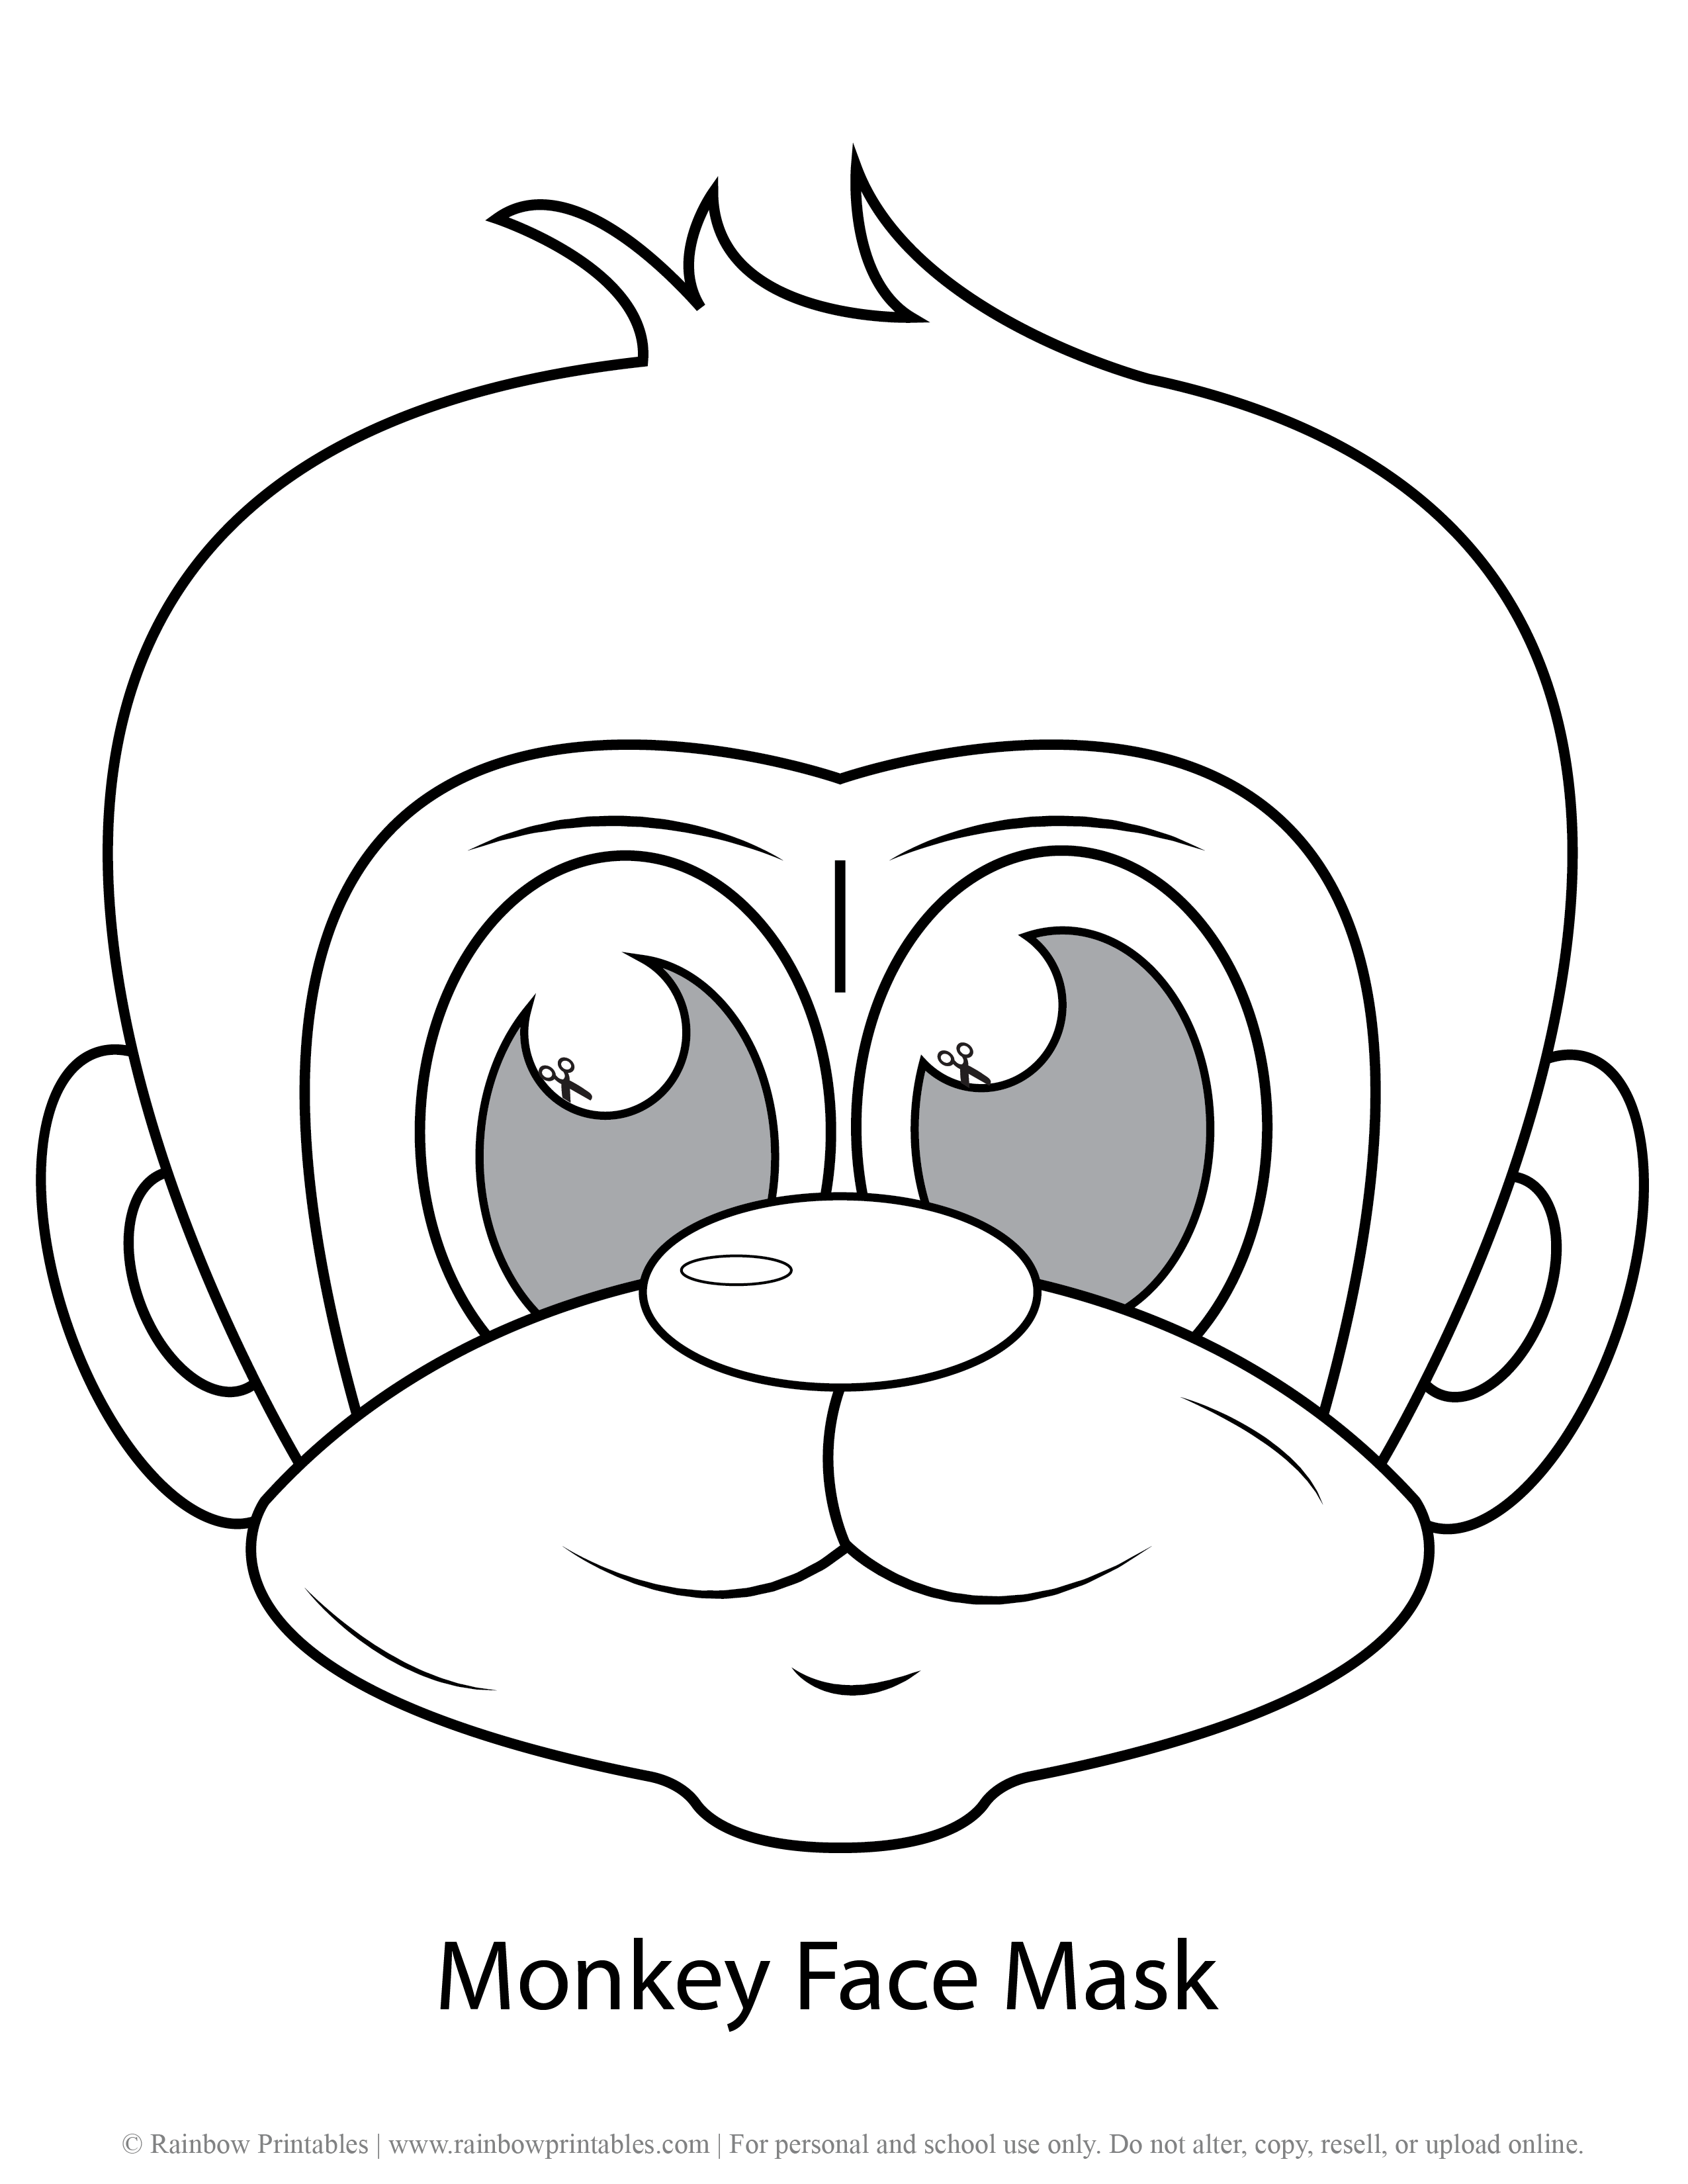 Monkey Face Mask Template for Kids Printable Pretend Play Imagination Animal Free Arts Crafts Activities Learning Ape Chimp